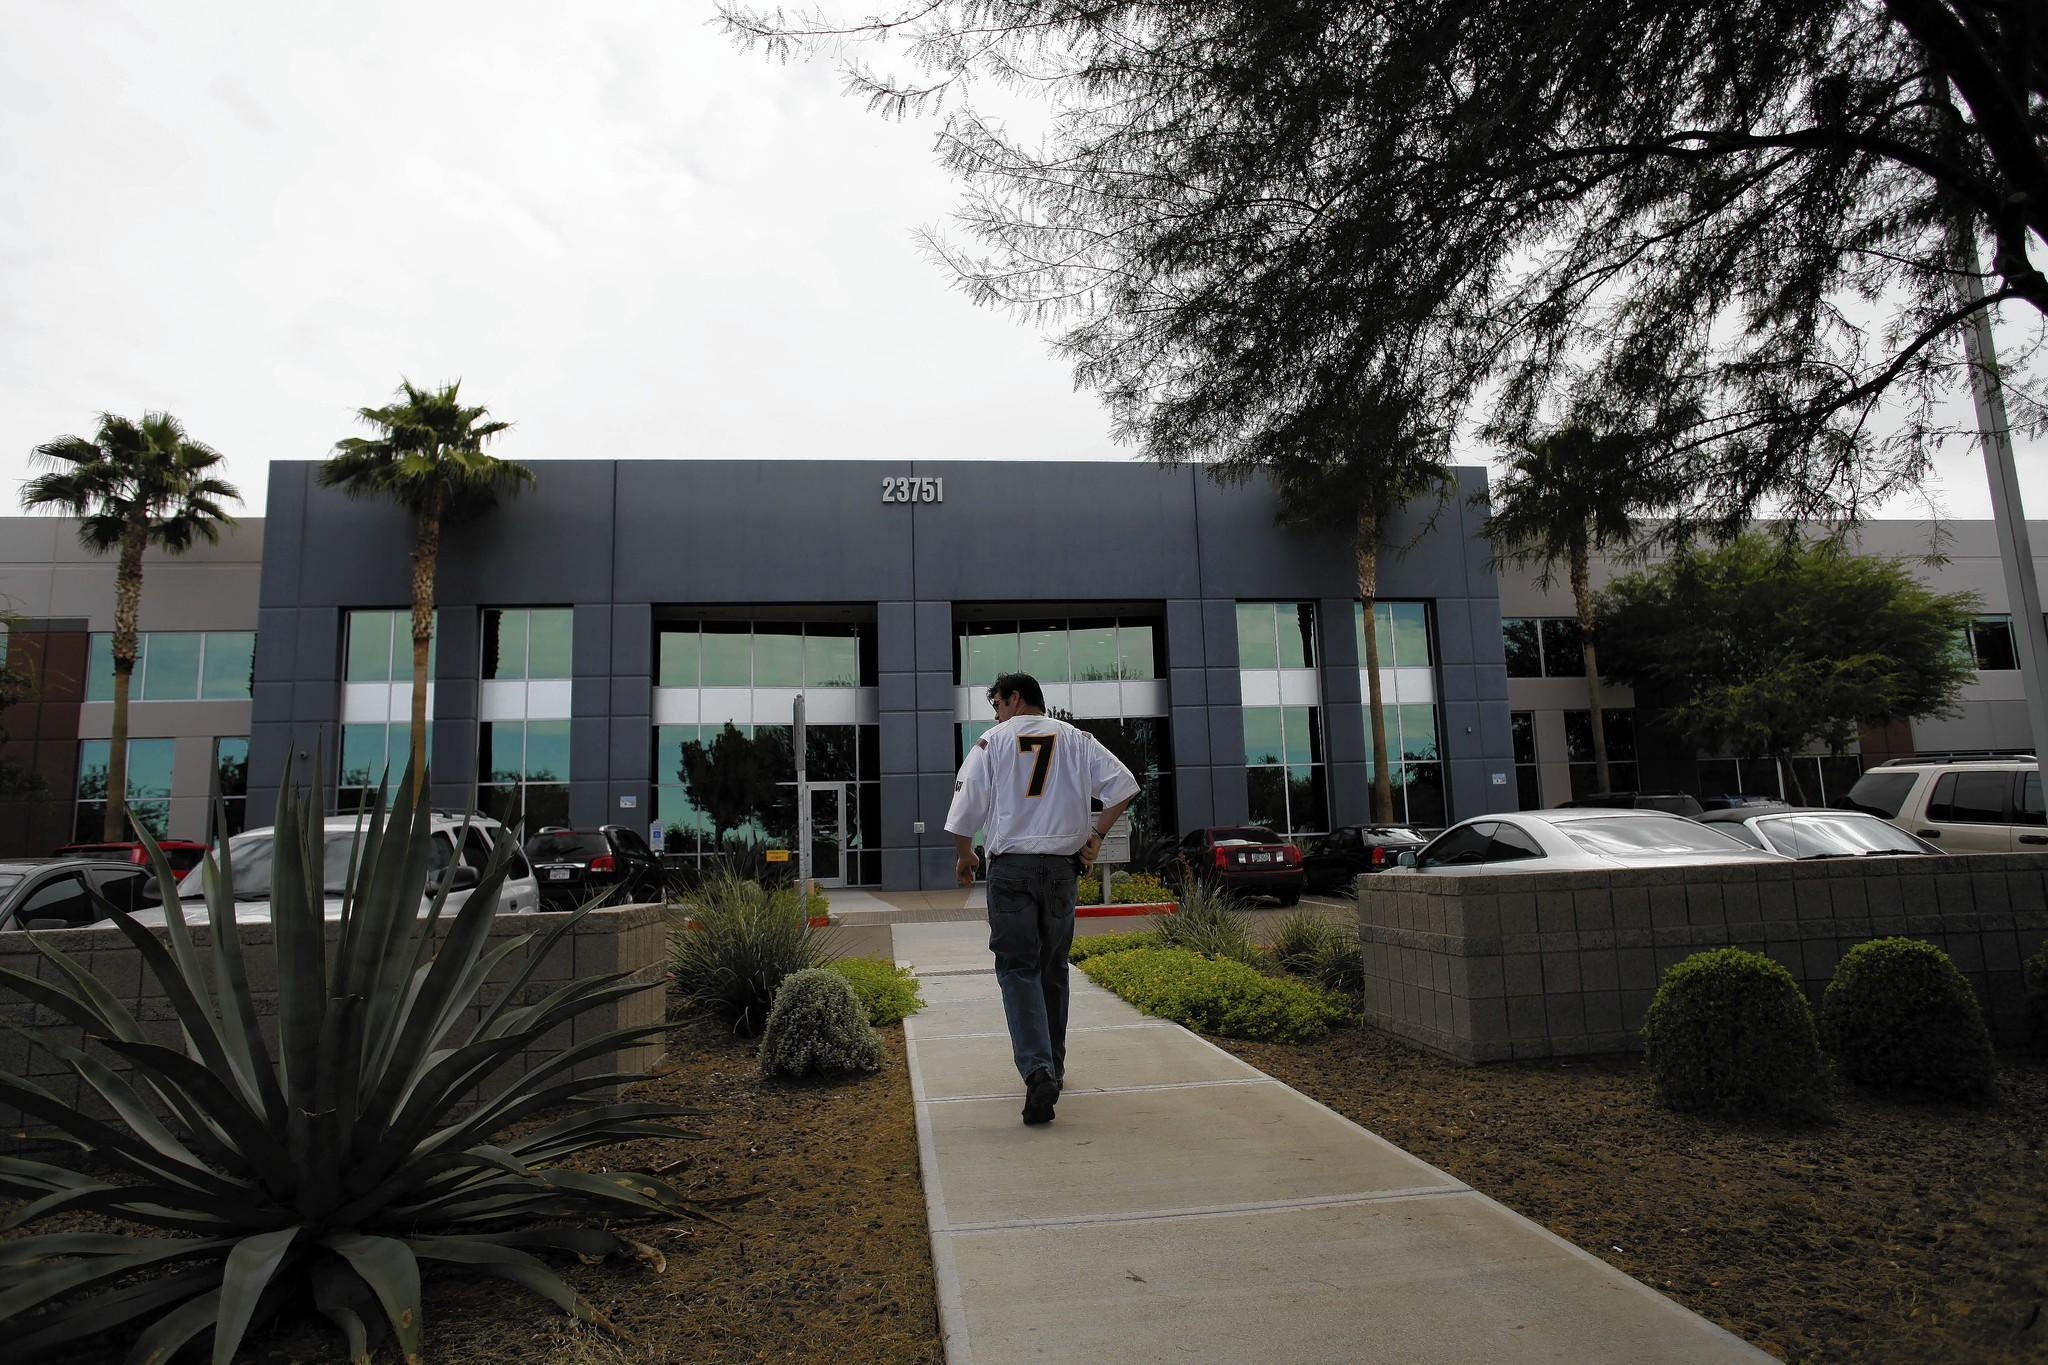 Redflex Traffic Systems, headquartered in this Phoenix building, says the officials associated with the bribery scandal no longer work for the company.